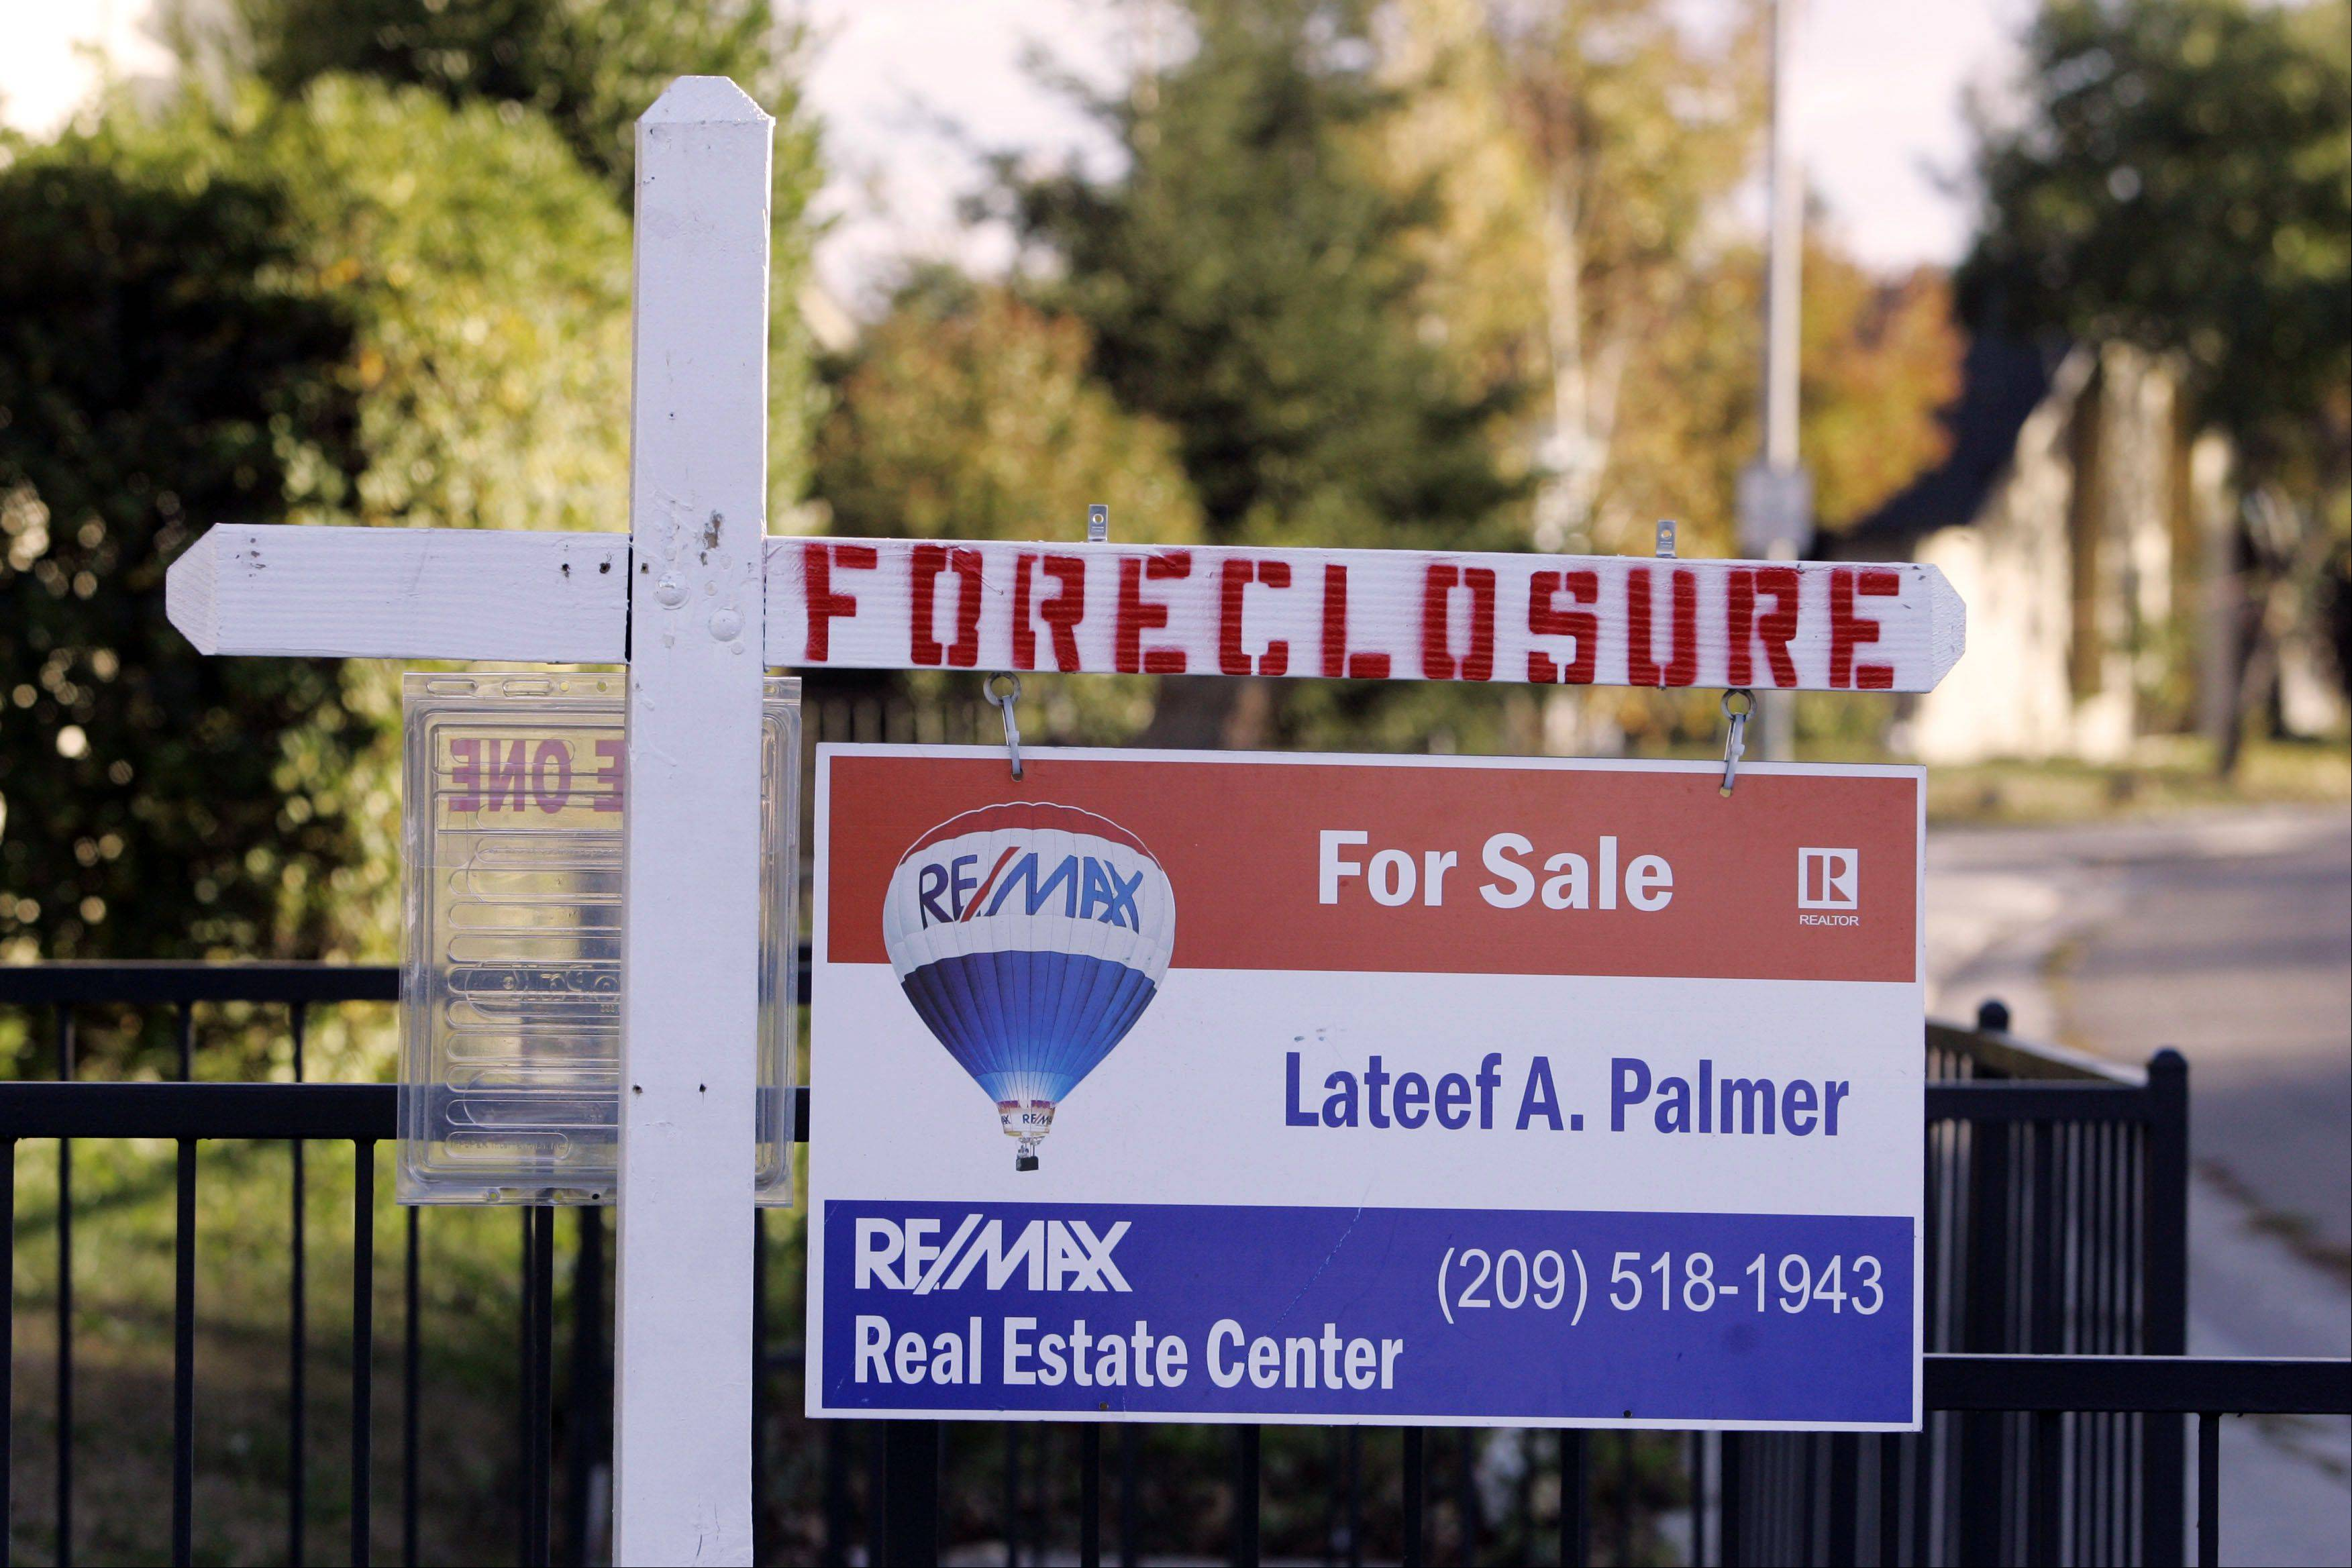 A foreclosure sign is seen atop a sale sign for a house in Stockton, Calif., Saturday, Dec. 1, 2007. Home foreclosures soared to an all-time high in the final quarter of last year and are likely to keep on rising, underscoring the suffering of distressed homeowners and the growing danger the housing meltdown poses for the economy. (AP Photo/Marcio Jose Sanchez)